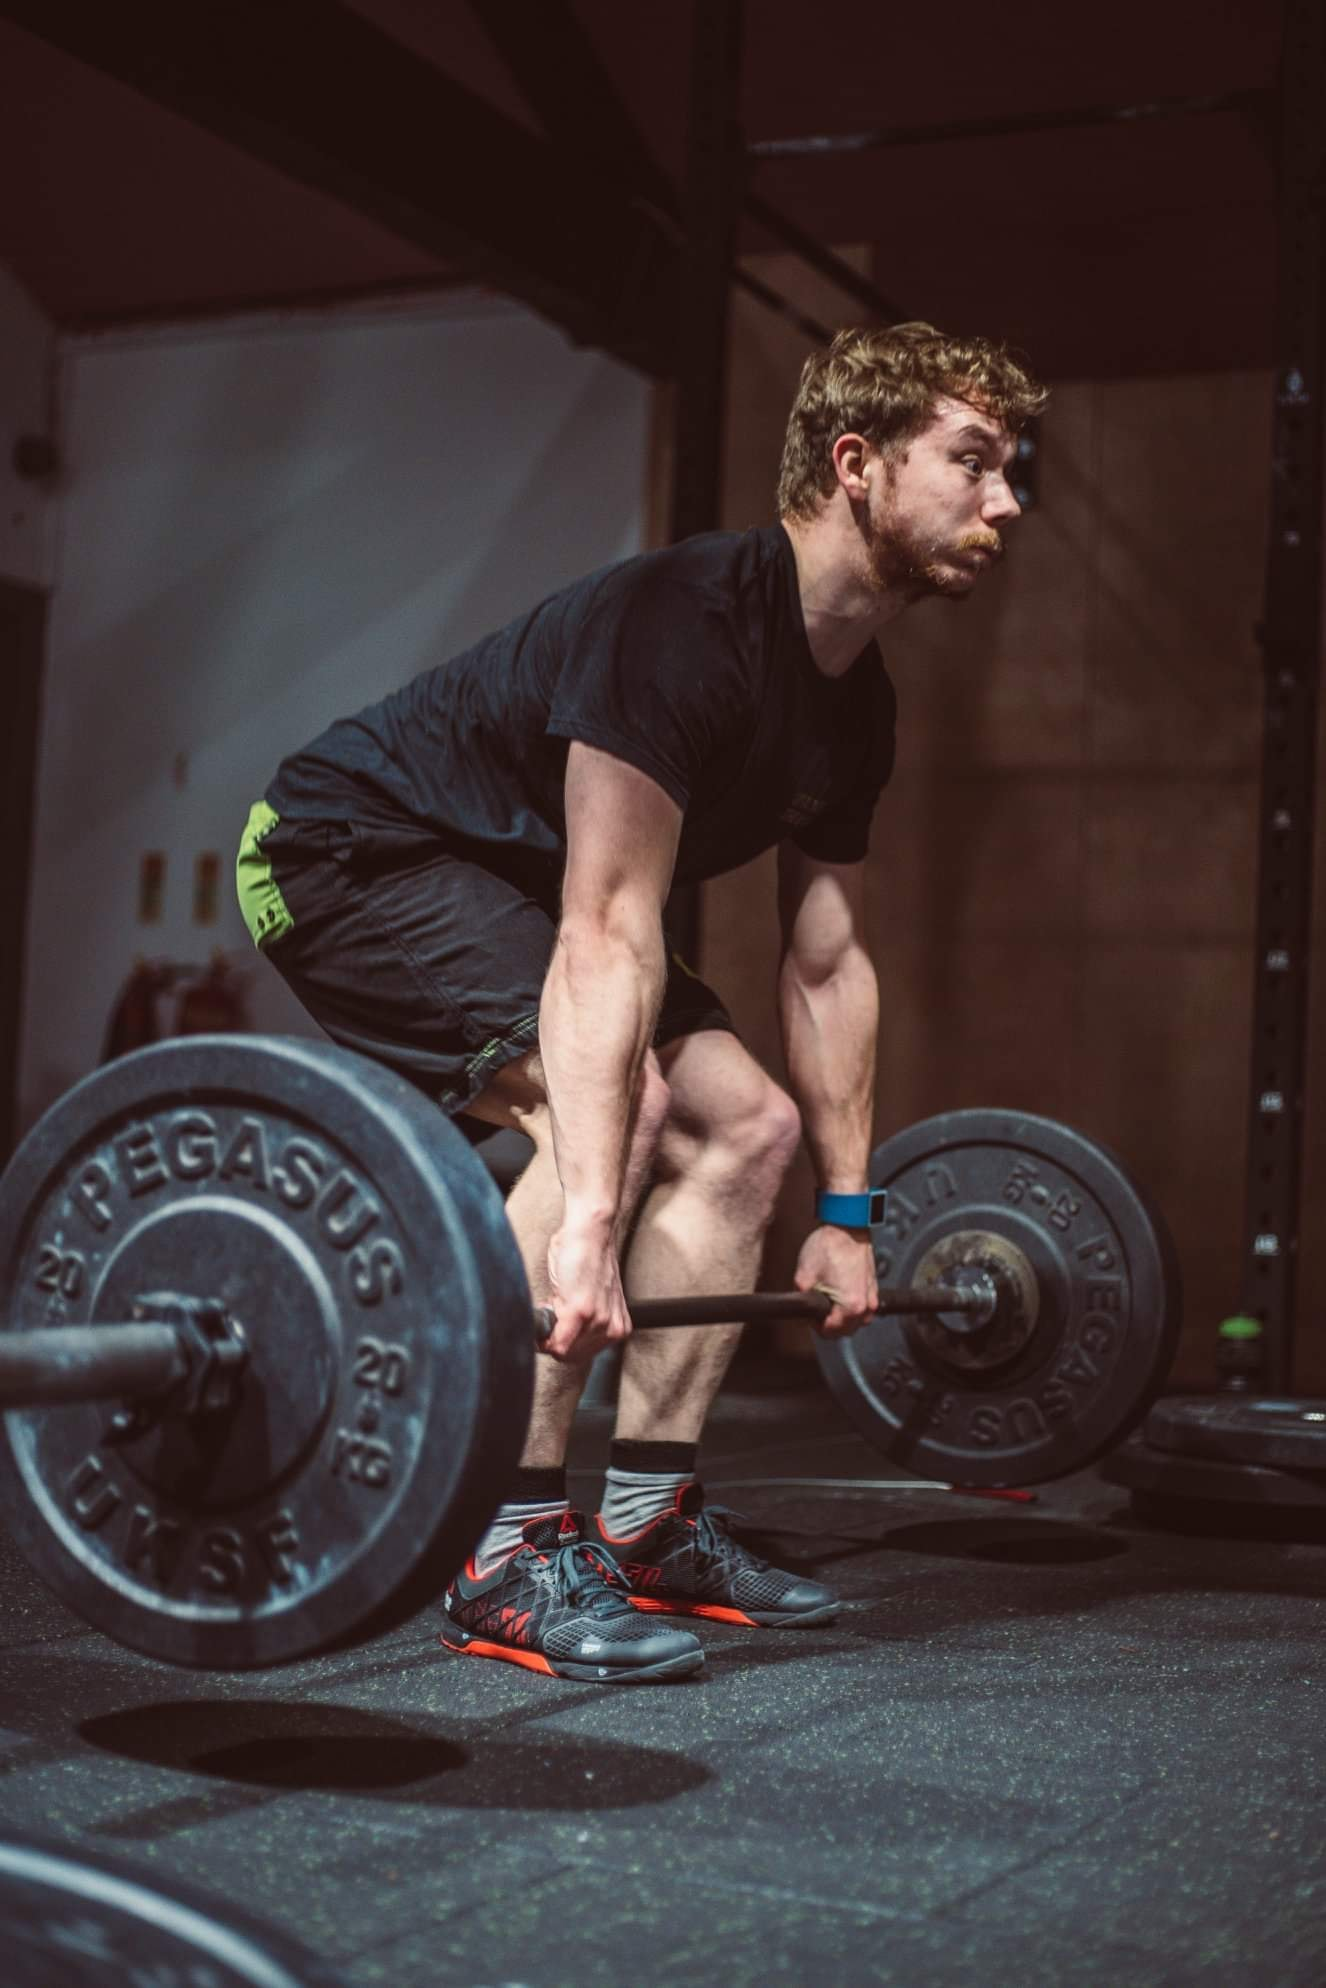 Picture of me deadlifting a 65kg barbell. Going into a power-clean.